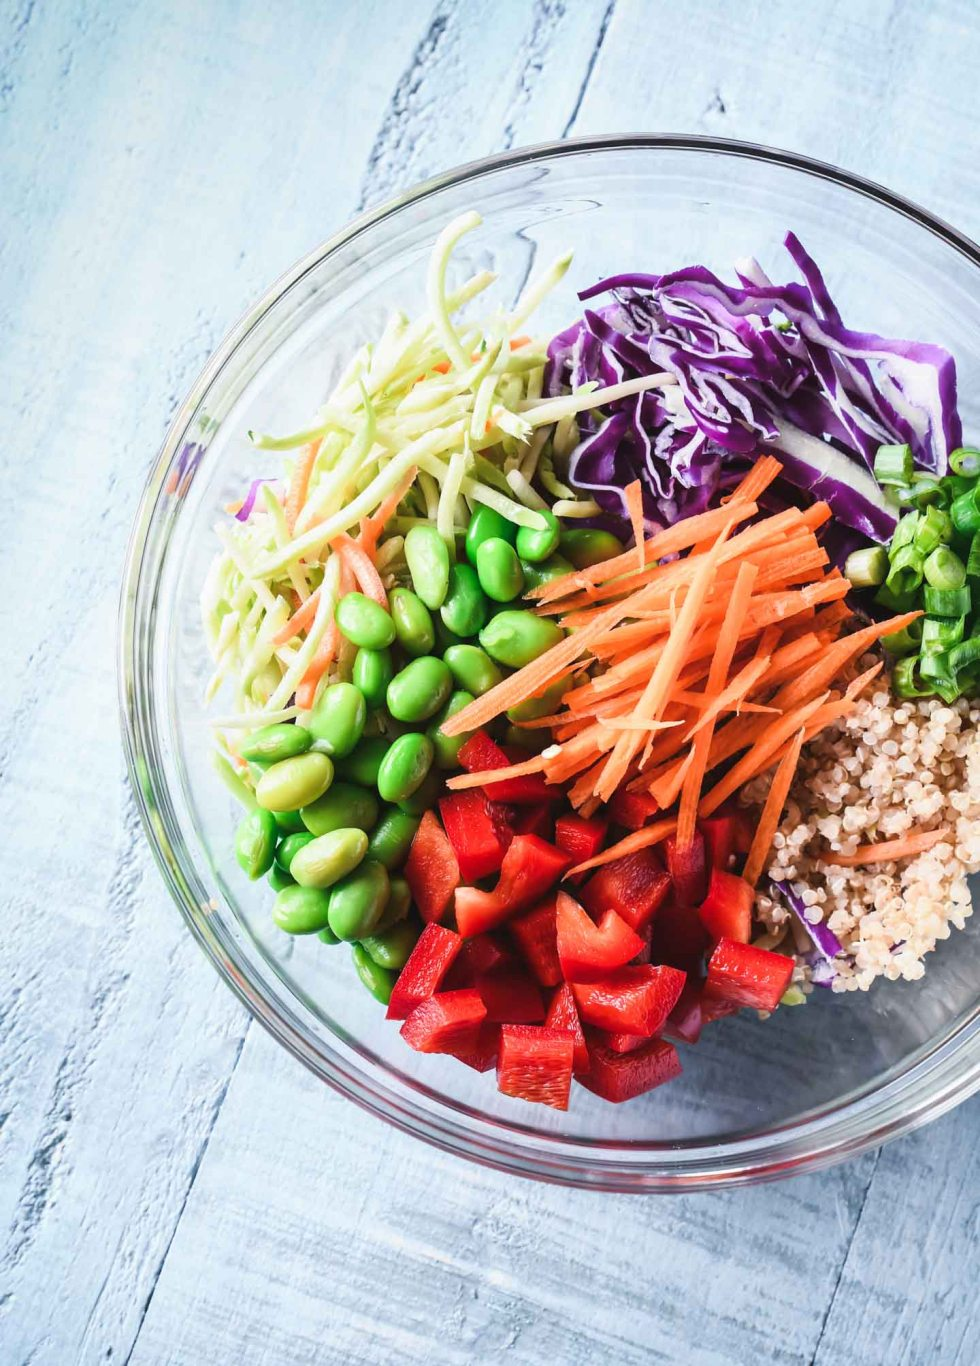 Ingredients for Asian quinoa salad - edamame, broccoli slaw, carrots and red cabbage in a clear bowl